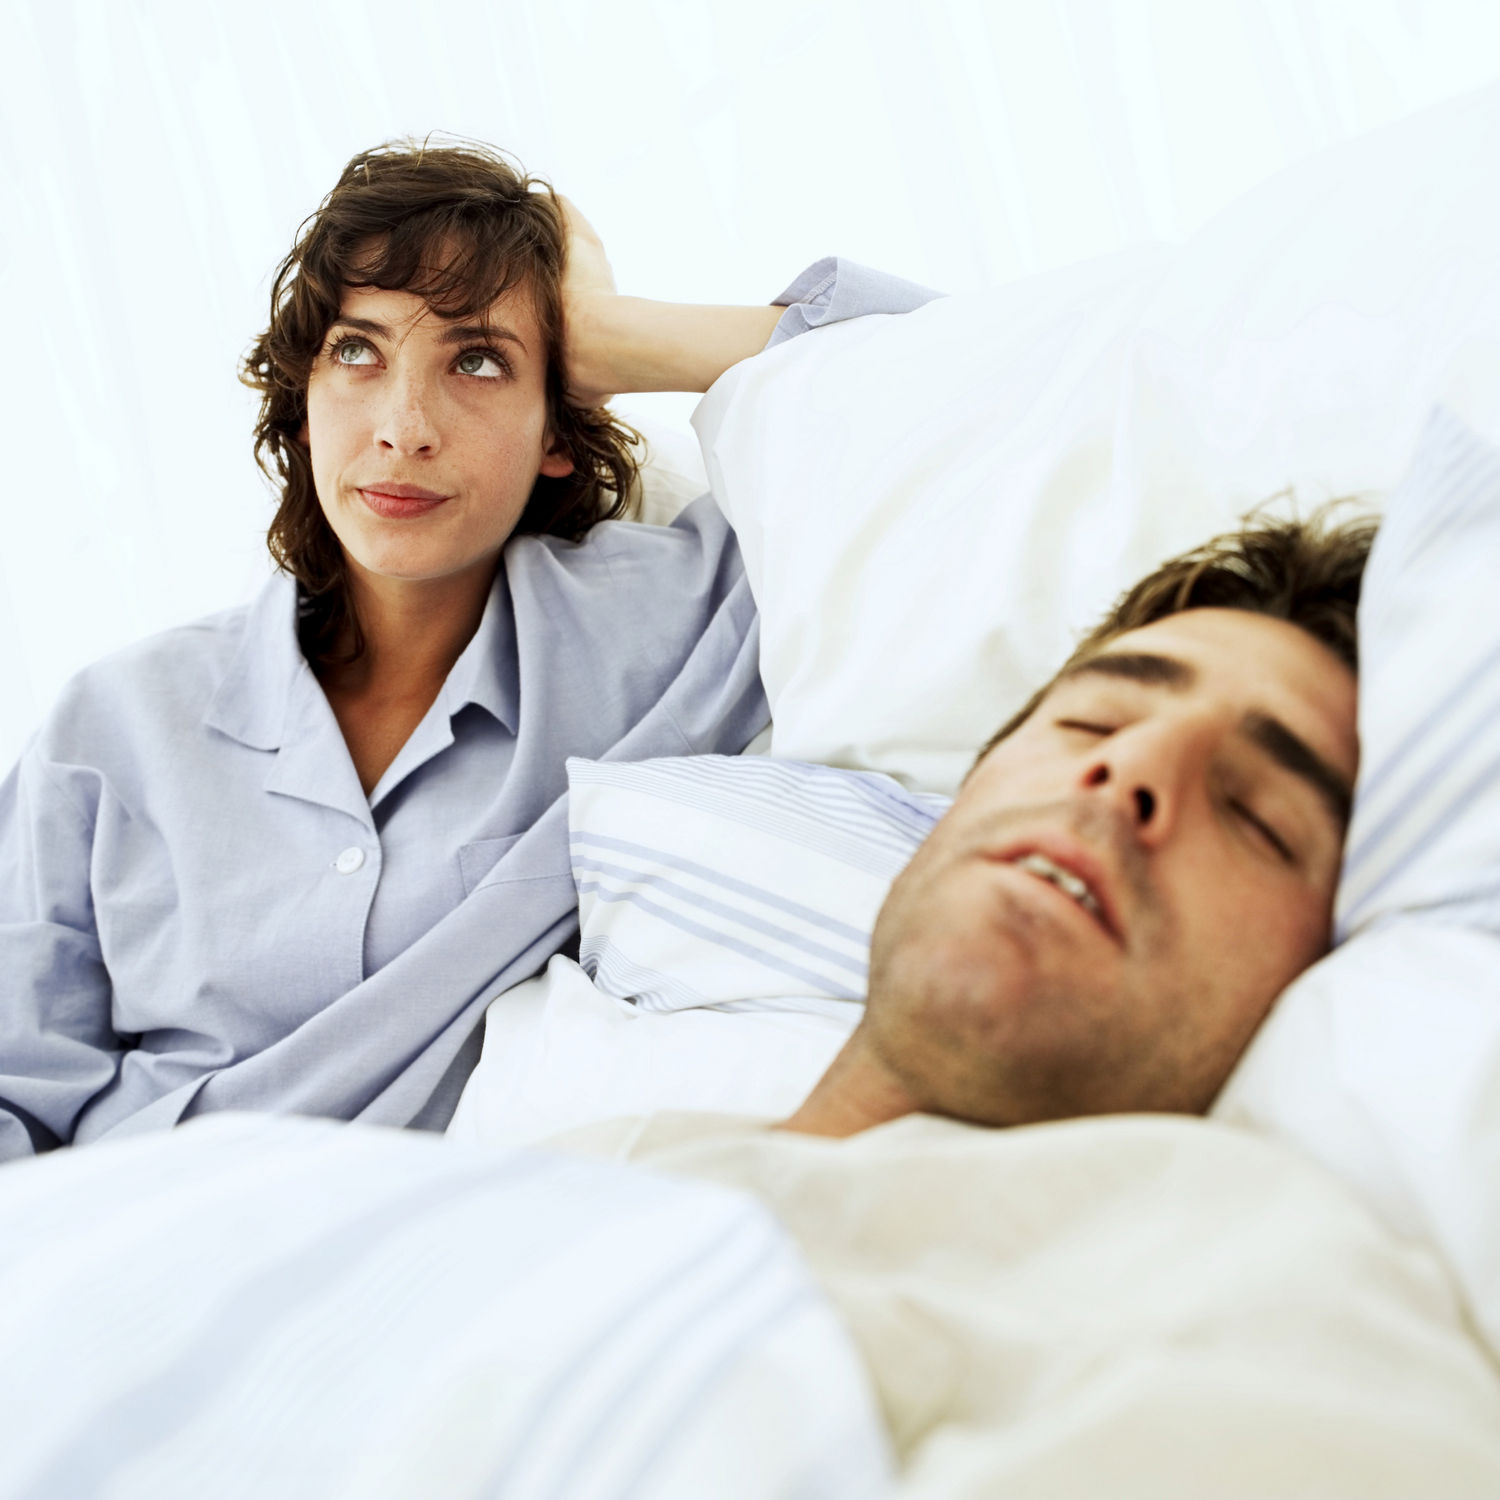 couple-in-bed-woman-frustrated-main